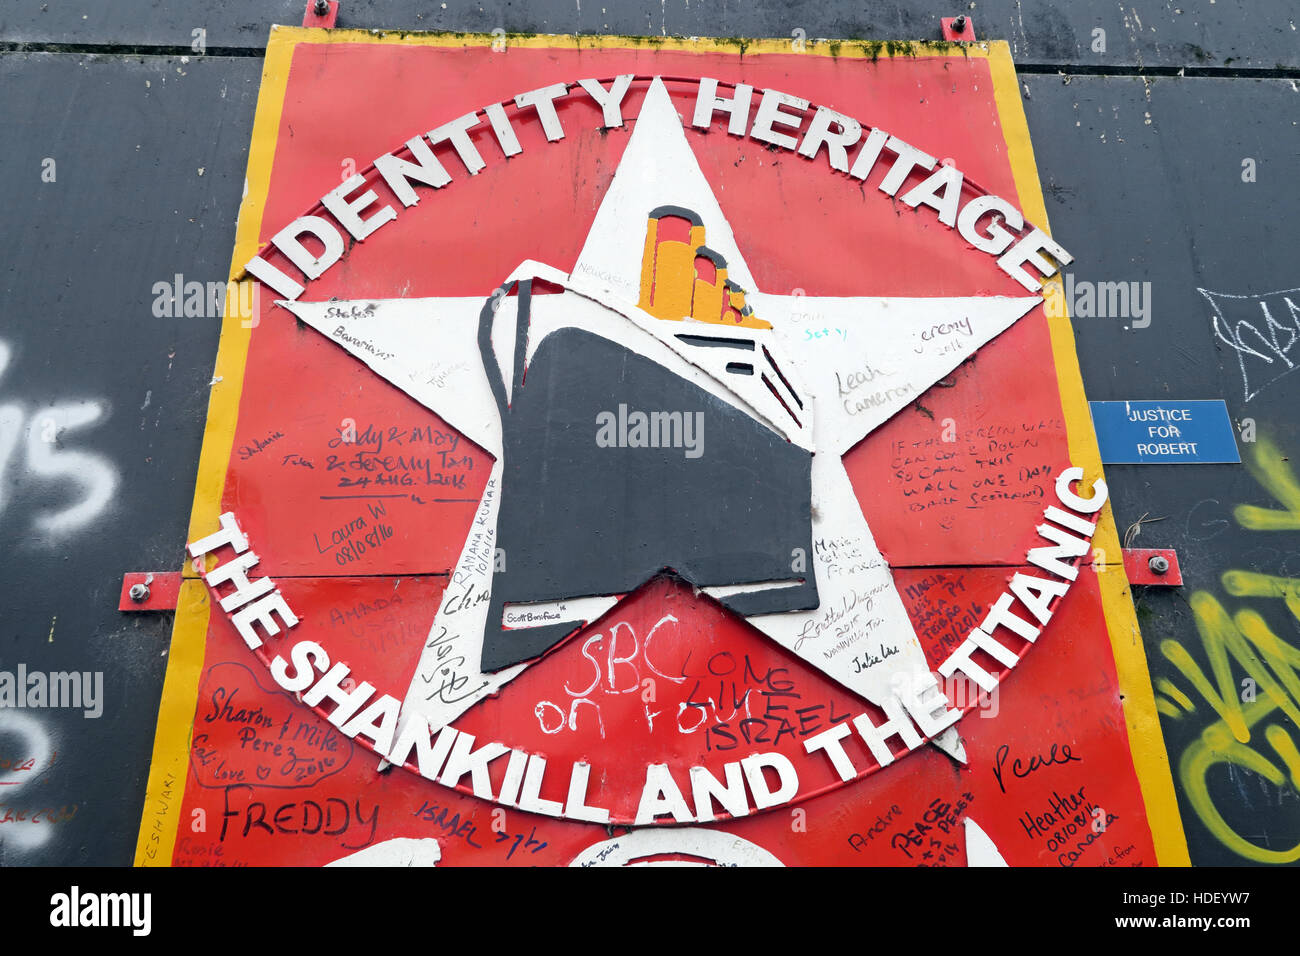 International Peace Wall,Cupar Way,West Belfast,Northern Ireland,UK,International,Peace,Wall,Cupar,shankill,Titanic,ship,H&W,White,star,Line,Shankill and the Titanic,IdentityHeritage,the white star,the white star line,GoTonySmith,@HotpixUK,Tony,Smith,UK,GB,Great,Britain,United,Kingdom,Irish,British,Ireland,problem,with,problem with,issue with,NI,Northern,Northern Ireland,Belfast,City,Centre,Art,Artists,the,troubles,The Troubles,Good Friday Agreement,Peace,honour,painting,wall,walls,tribute,Unionist,unionism,Protestant,community,Fight,Justice,West,Beal,feirste,martyrs,social,tour,tourism,tourists,urban,six,counties,6,backdrop,county,Antrim,UVF,DUP,British,GB,Empire,Buy Pictures of,Buy Images Of,Images of,Stock Images,Tony Smith,United Kingdom,Great Britain,British Isles,Belfast protestant community,Peoples army